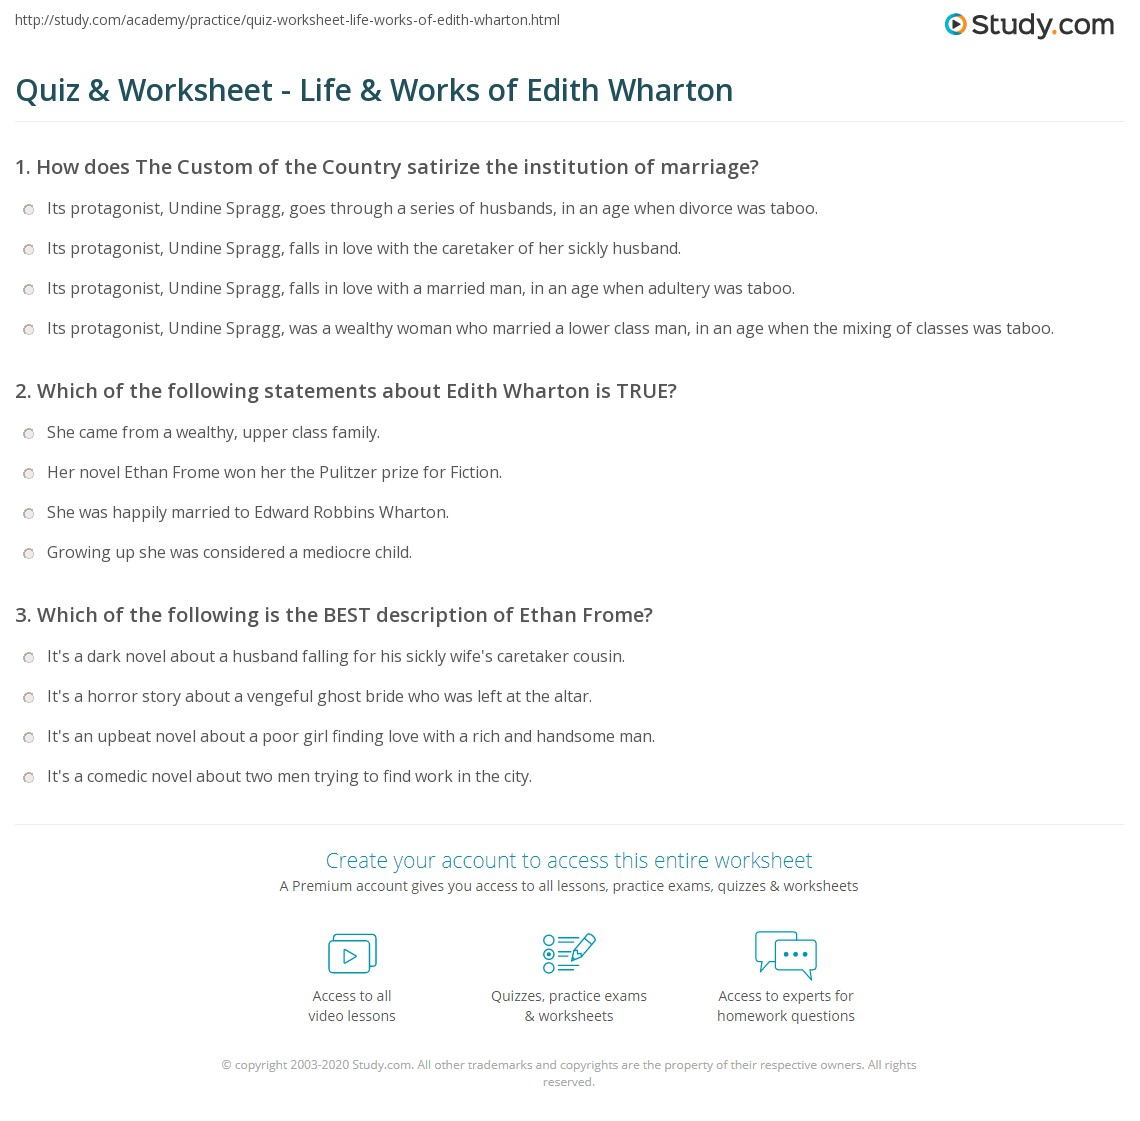 quiz worksheet life works of edith wharton com print edith wharton biography and major novels worksheet